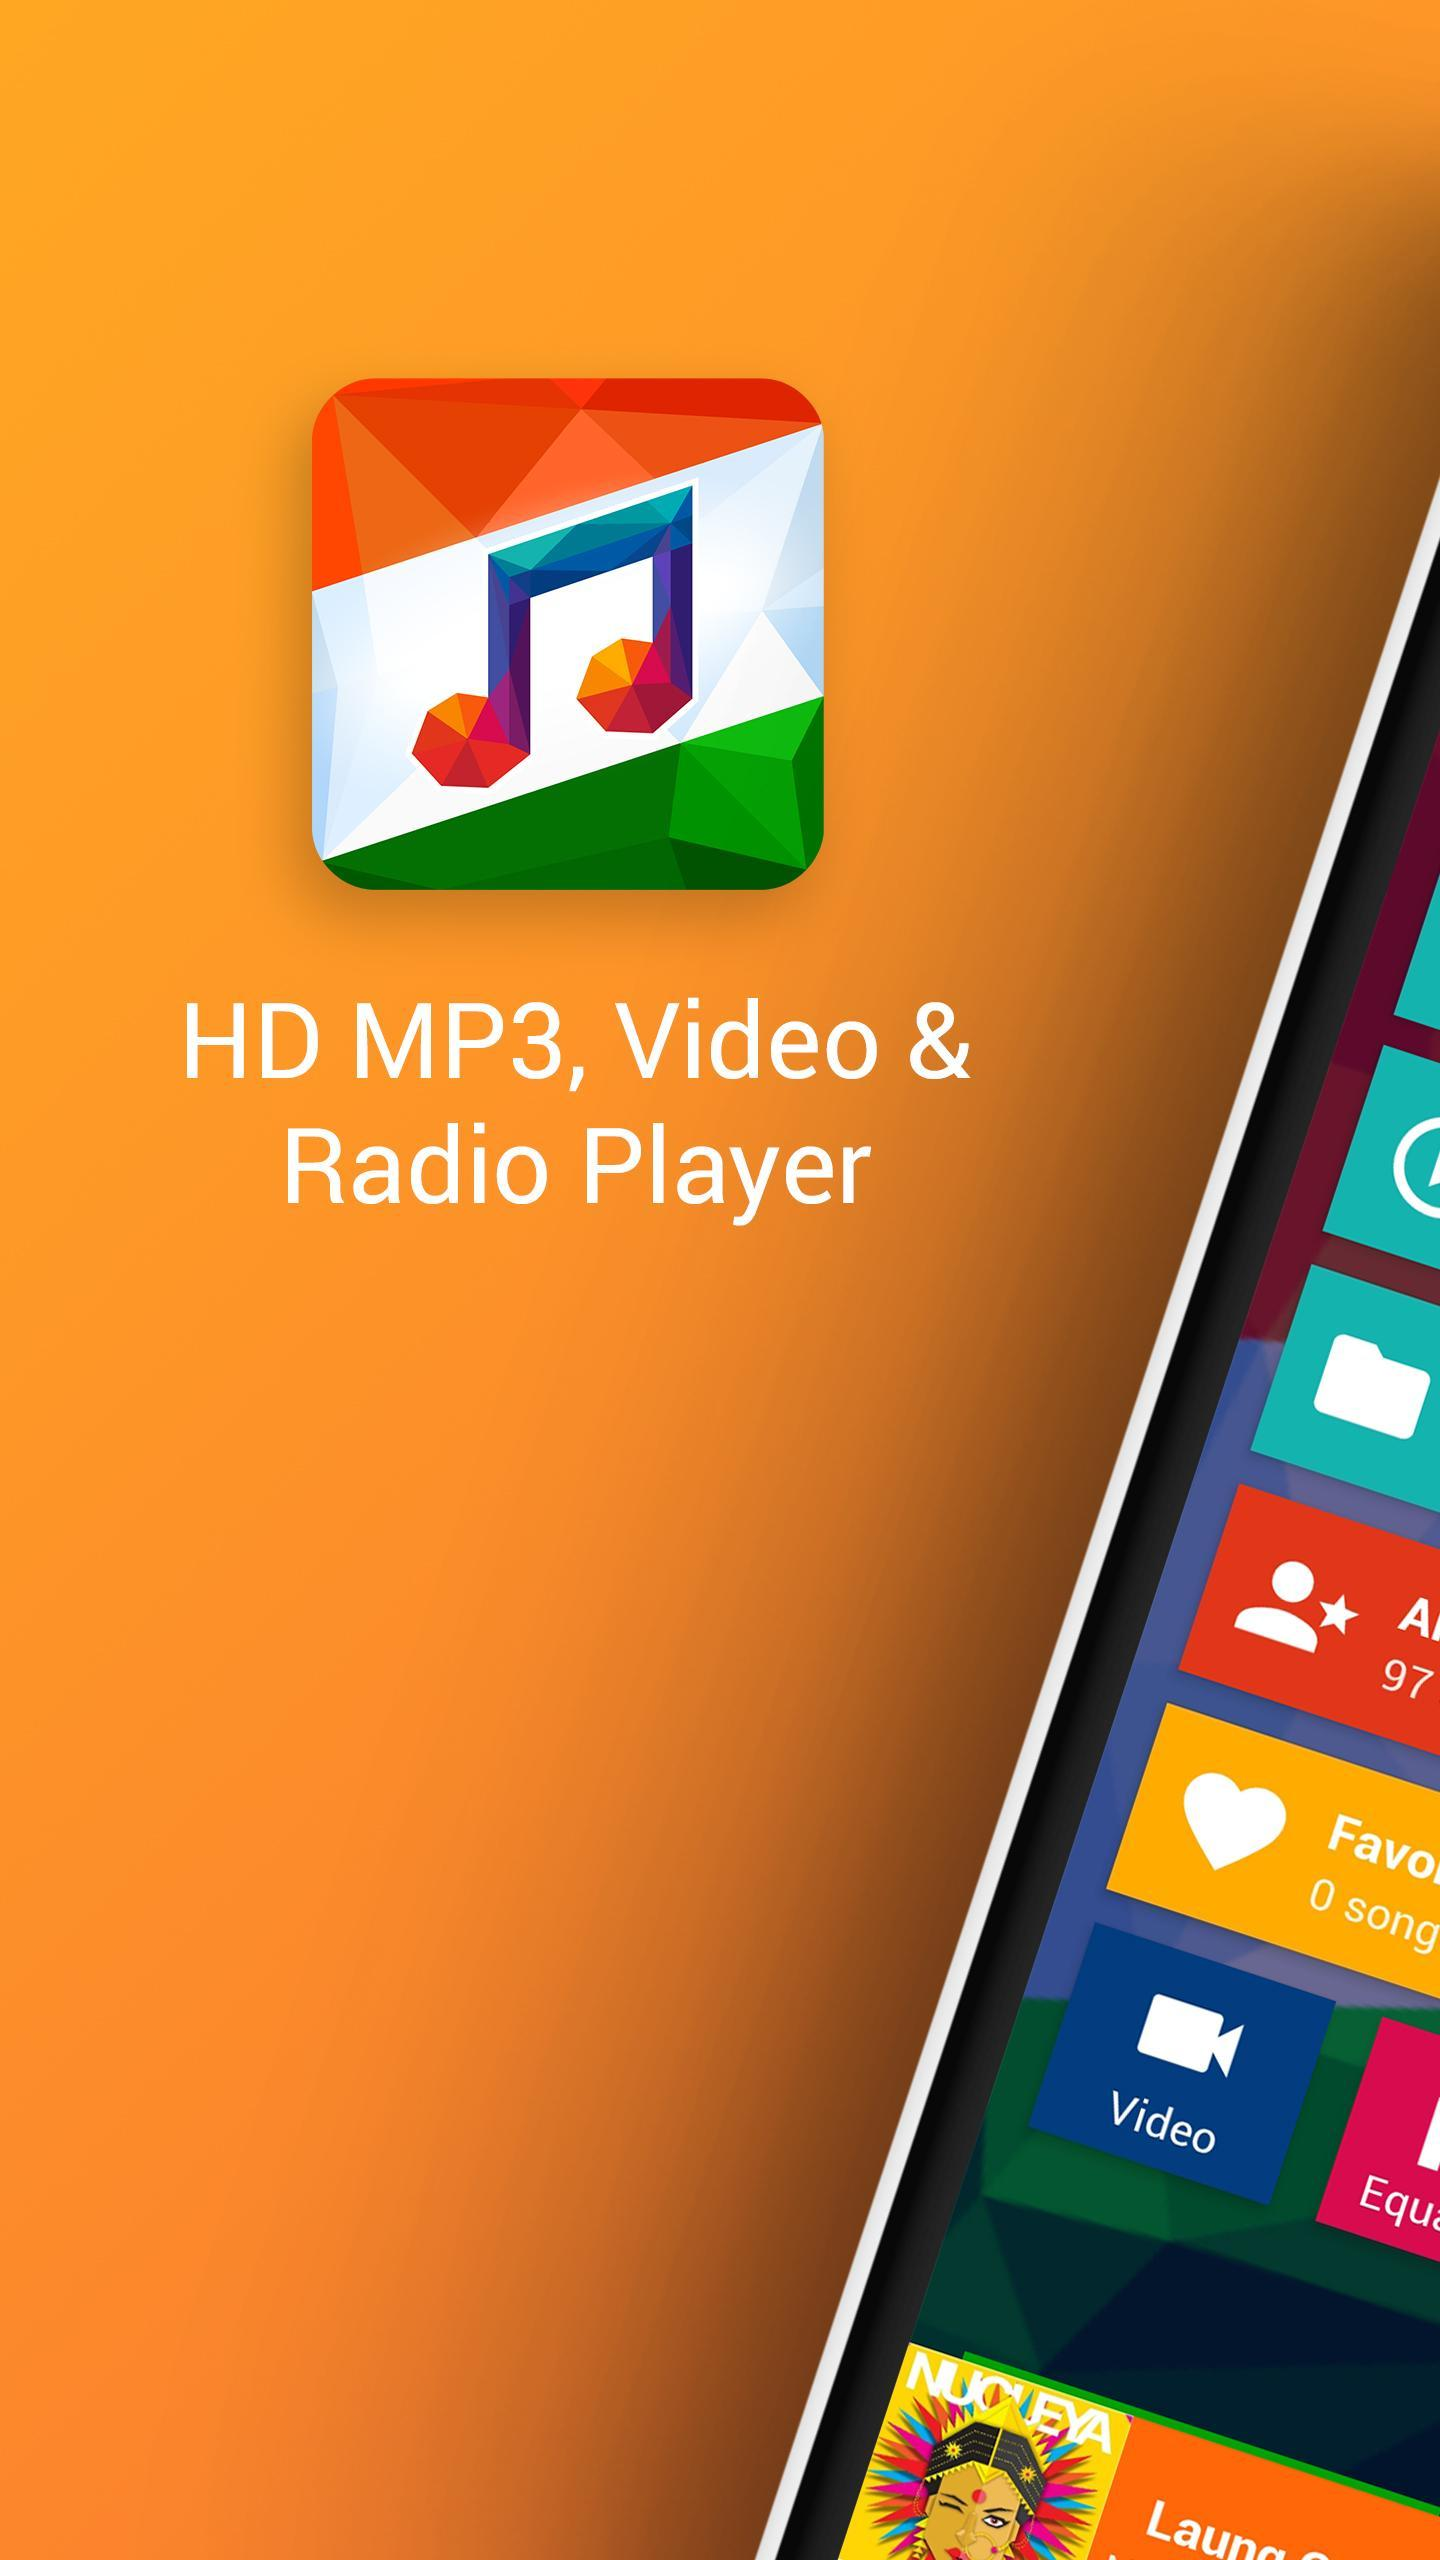 Indian Music Player for Android - APK Download